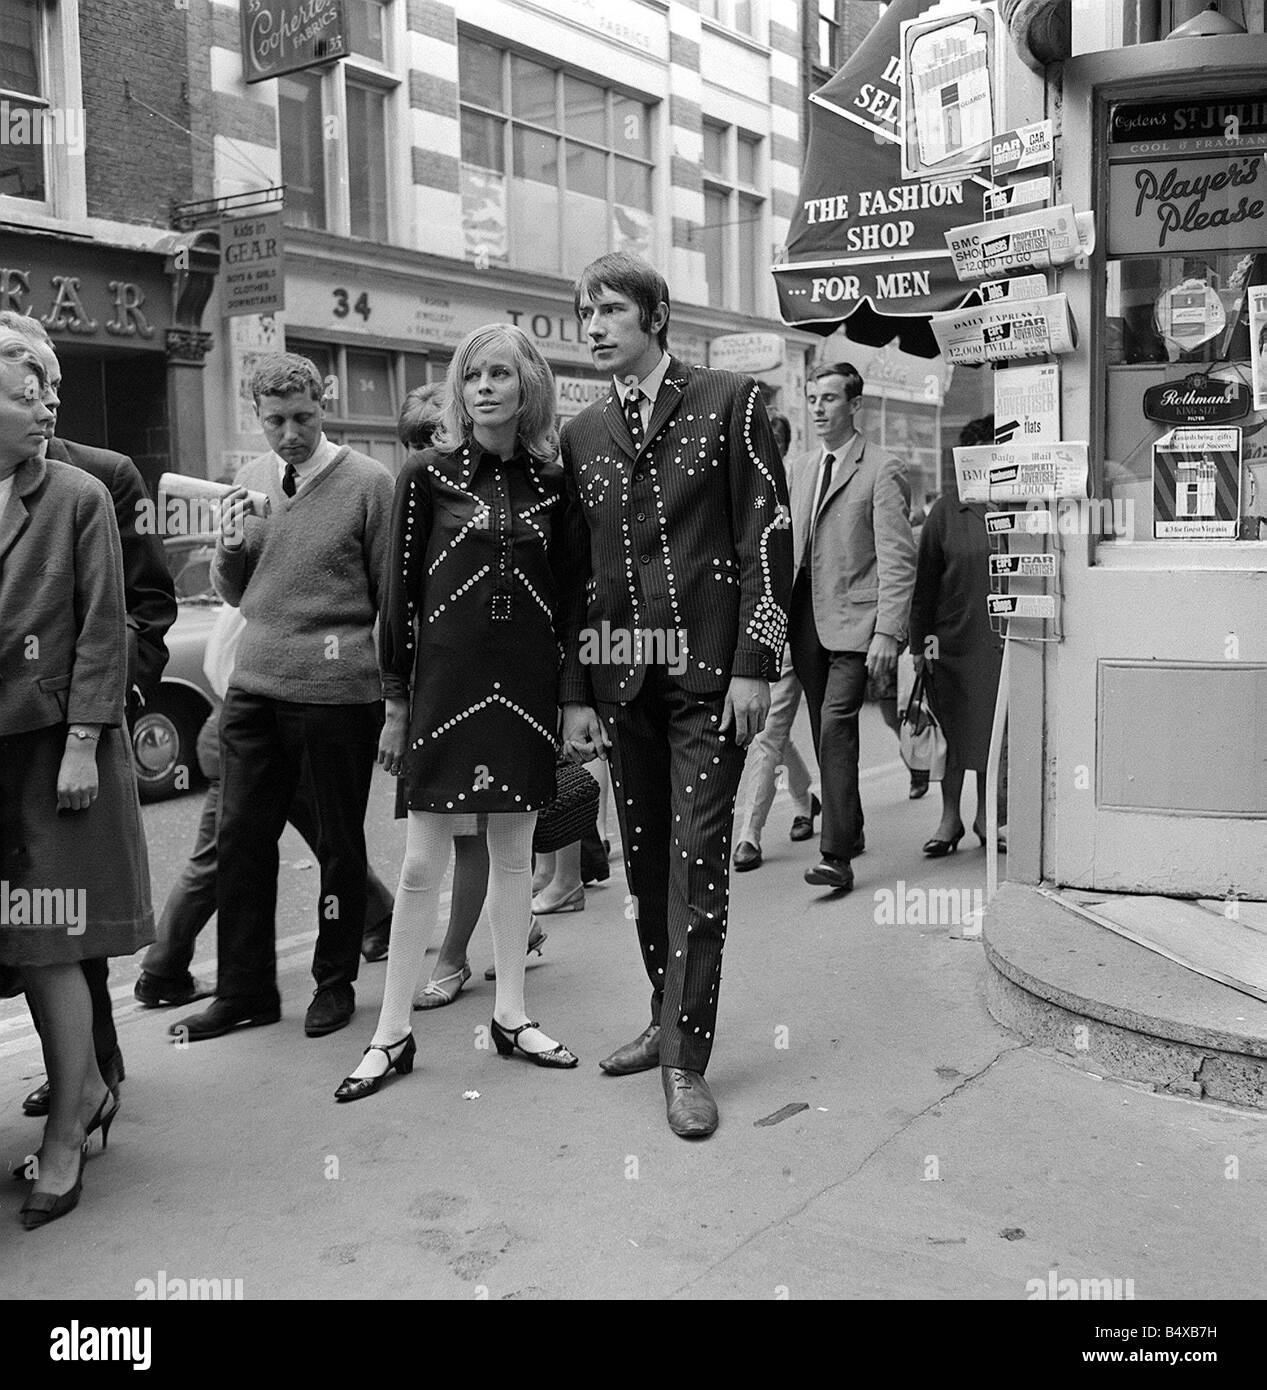 Carnaby Street London was a fashion mecca in the 1960s This image shows how the trendy youths of that time preferred - Stock Image